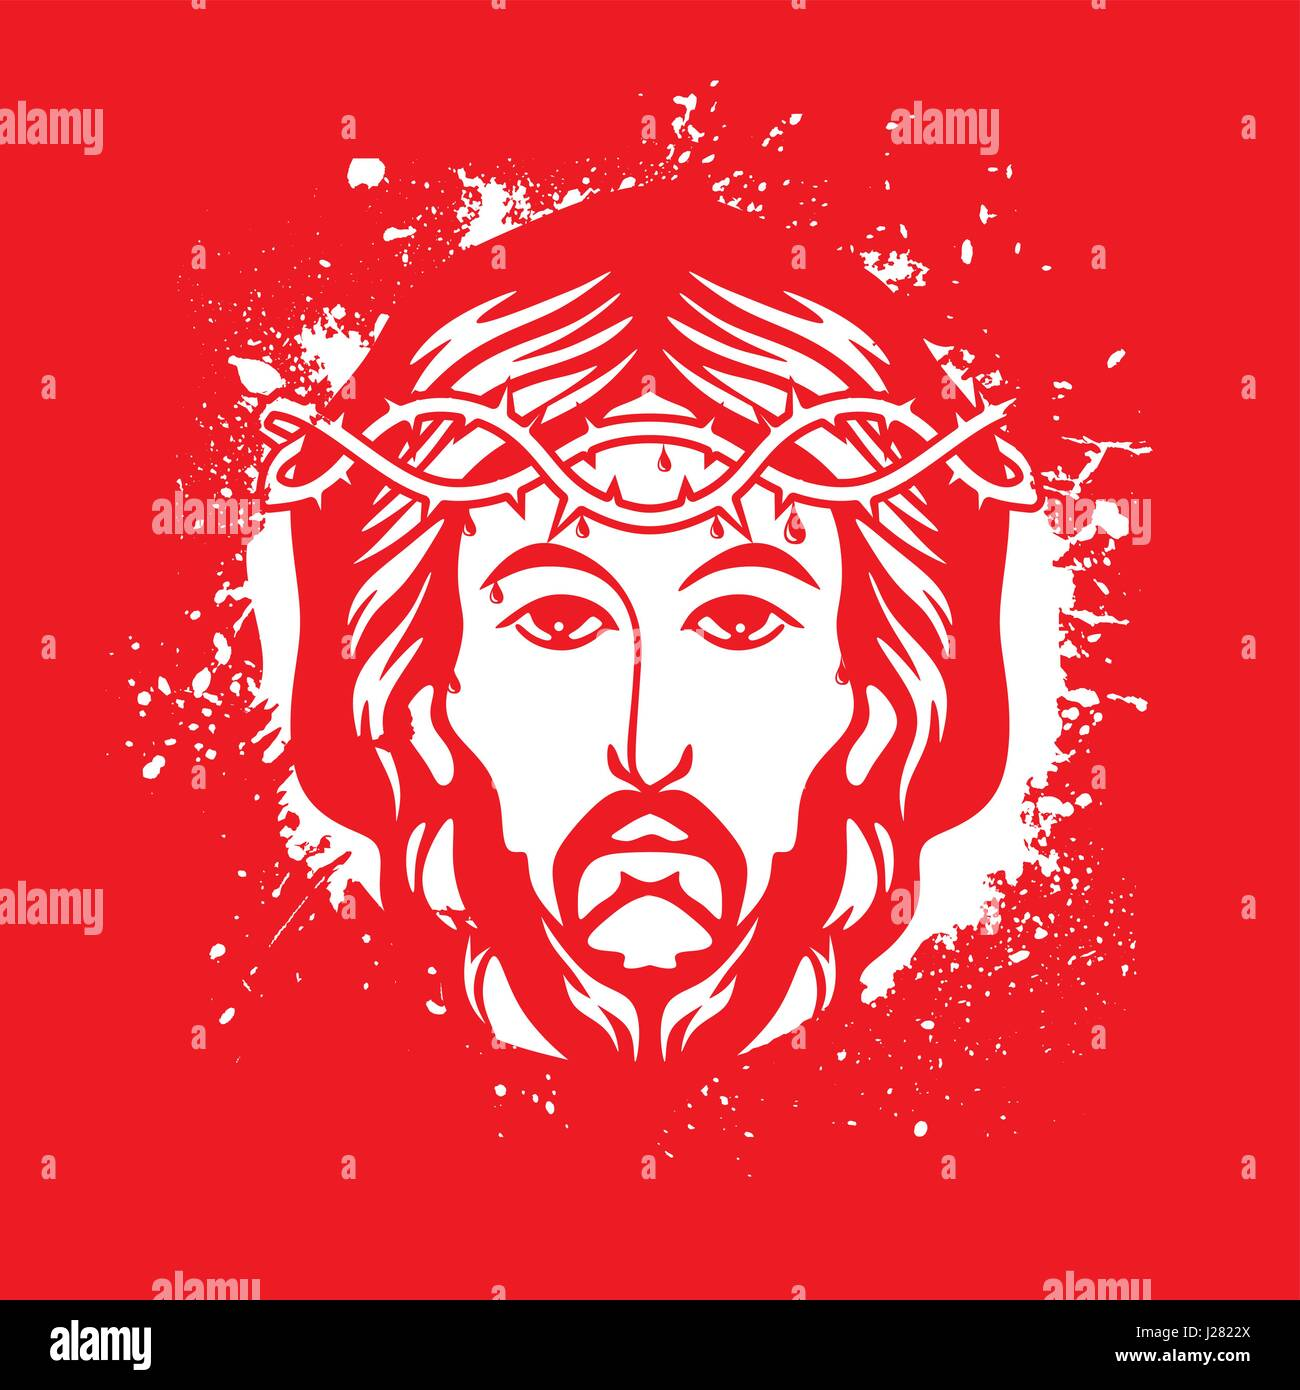 Messiah Jesus Stock Vector Images - Alamy